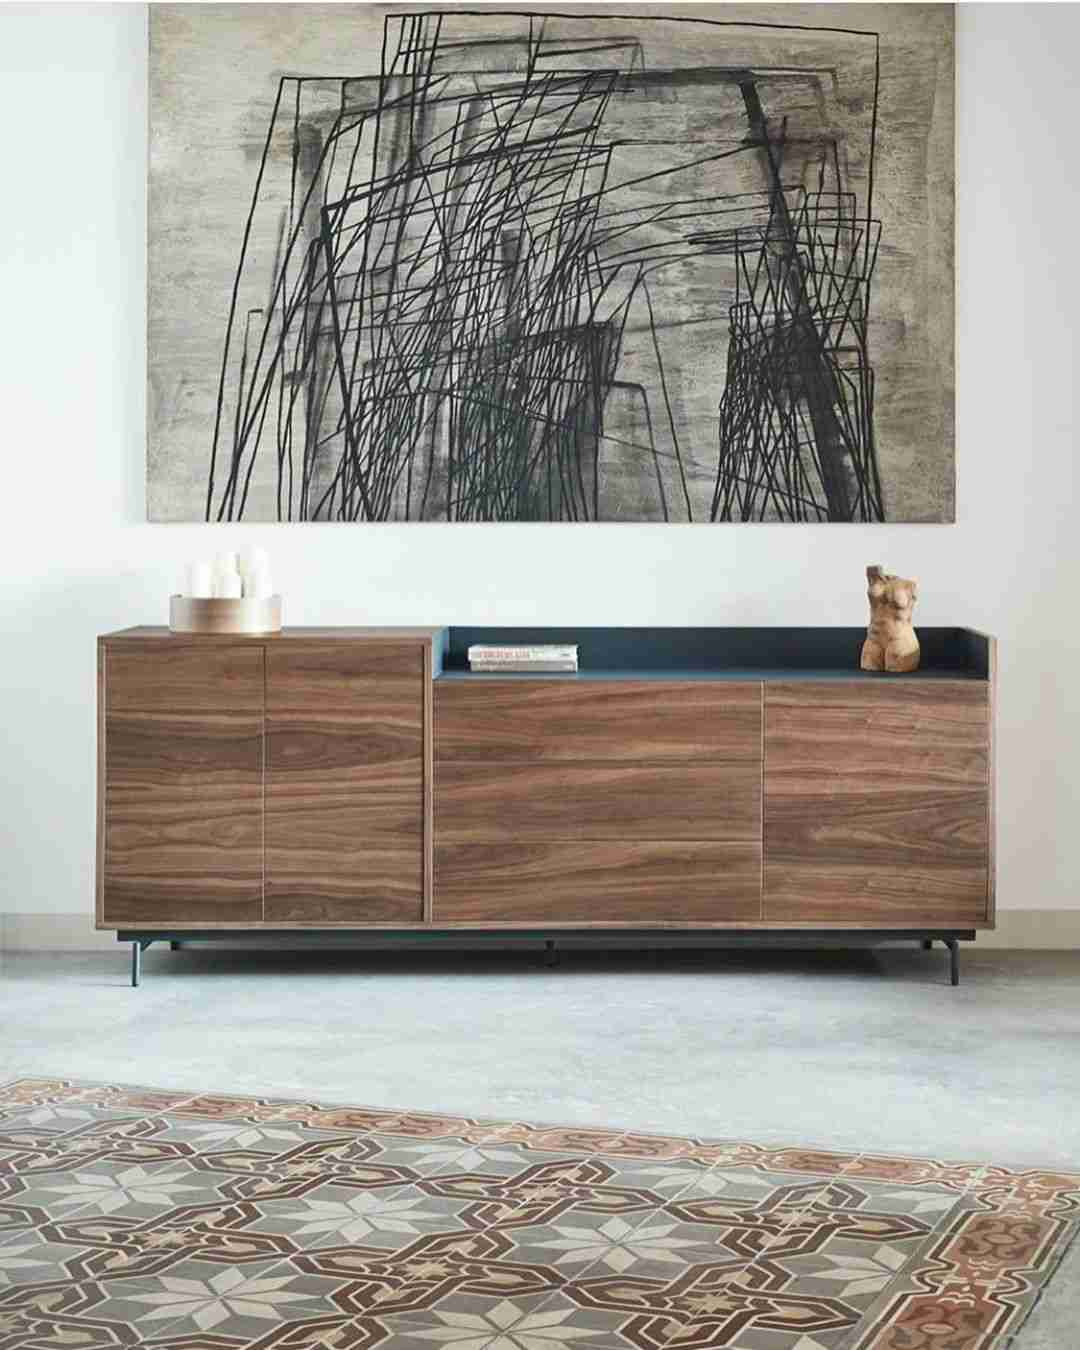 konsola, console, wooden, brown, kafe console, carpet, xali, modern, monterno, modern console, accessories, deliver to agia napa,andreotti, furniture, cyprus, limassol, epipla